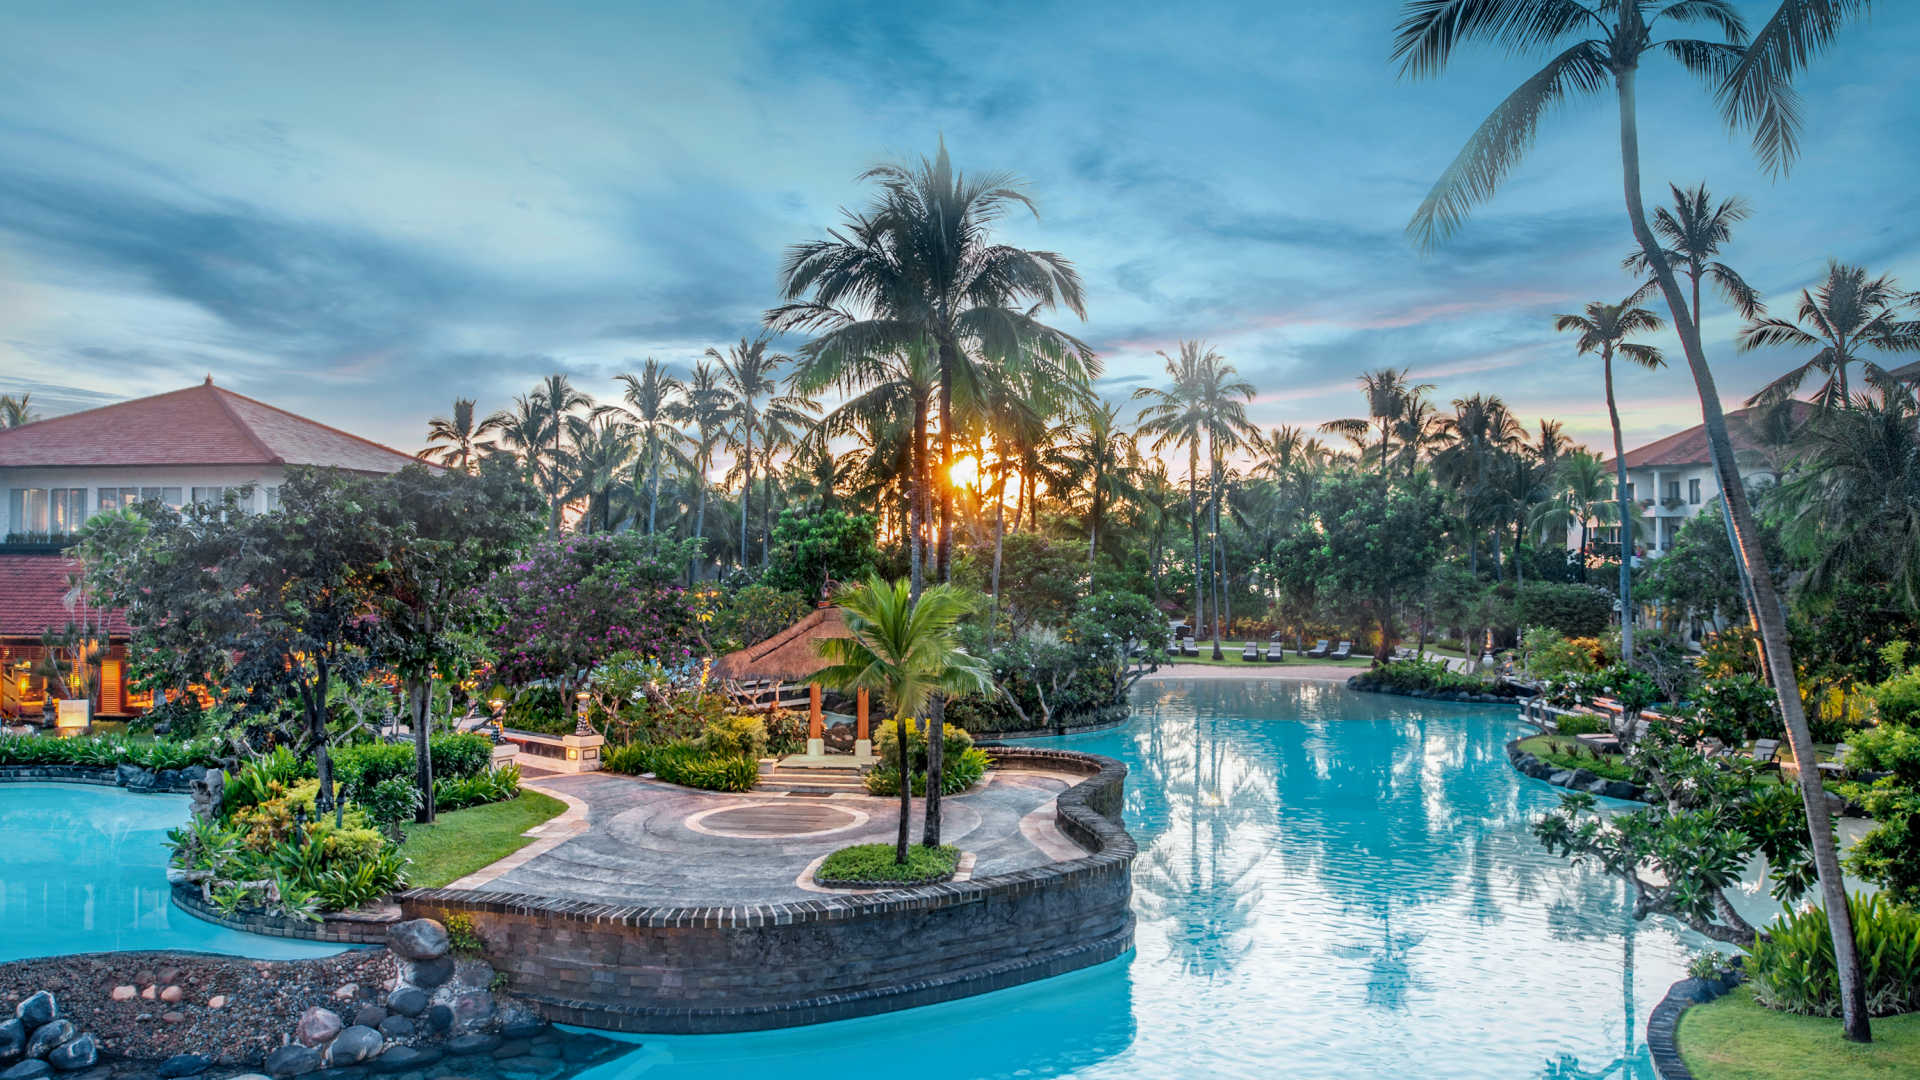 The Laguna Resort & Spa - Nusa Dua